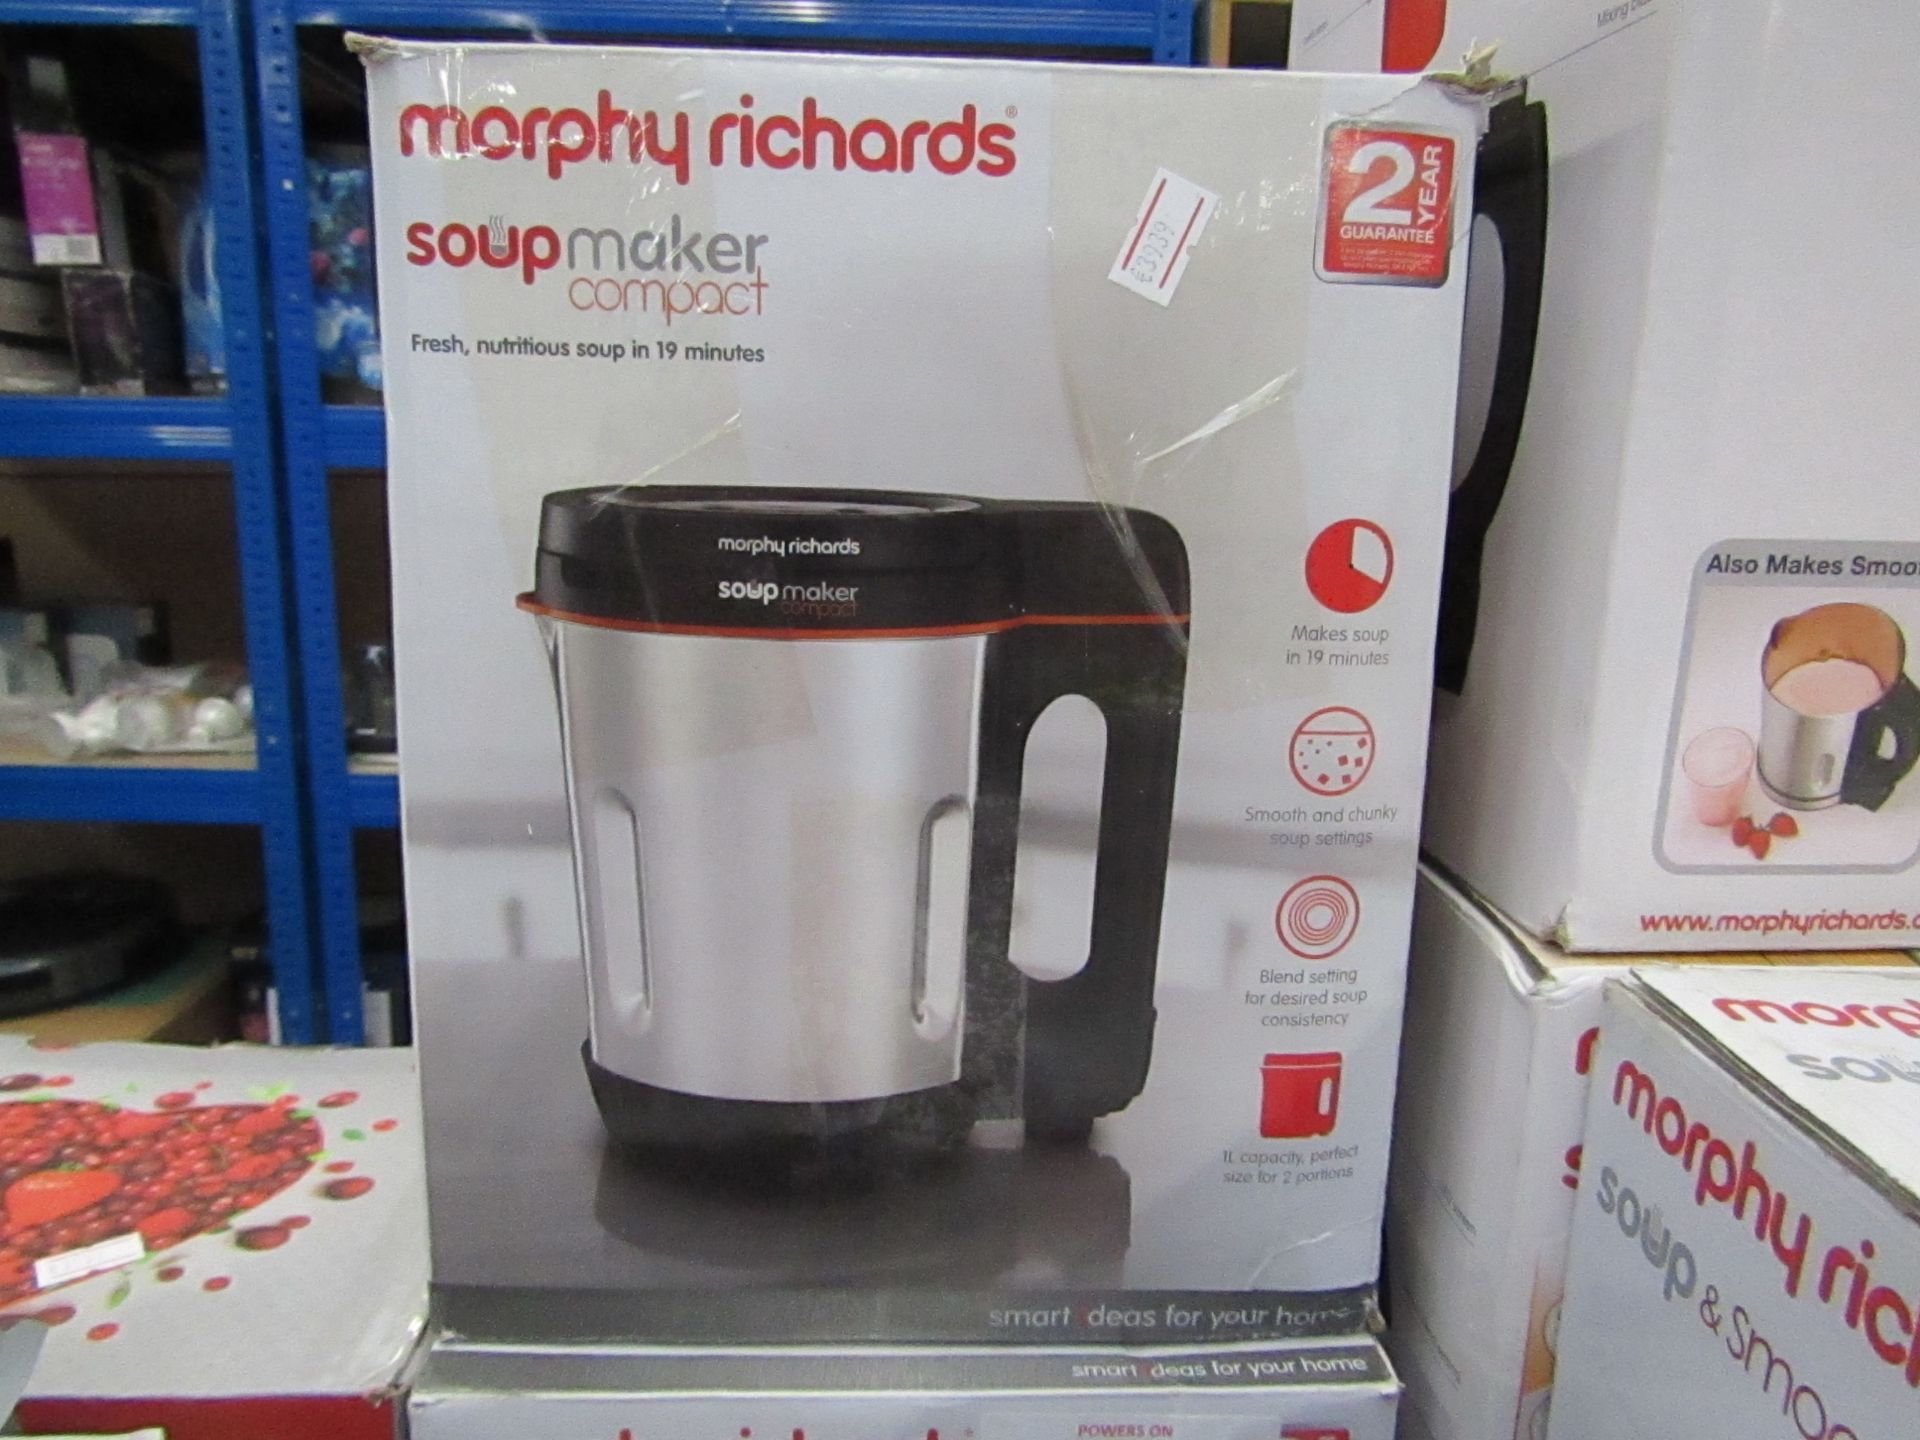 Lot 11 - Morphy Richards soup maker compact powers on and boxed